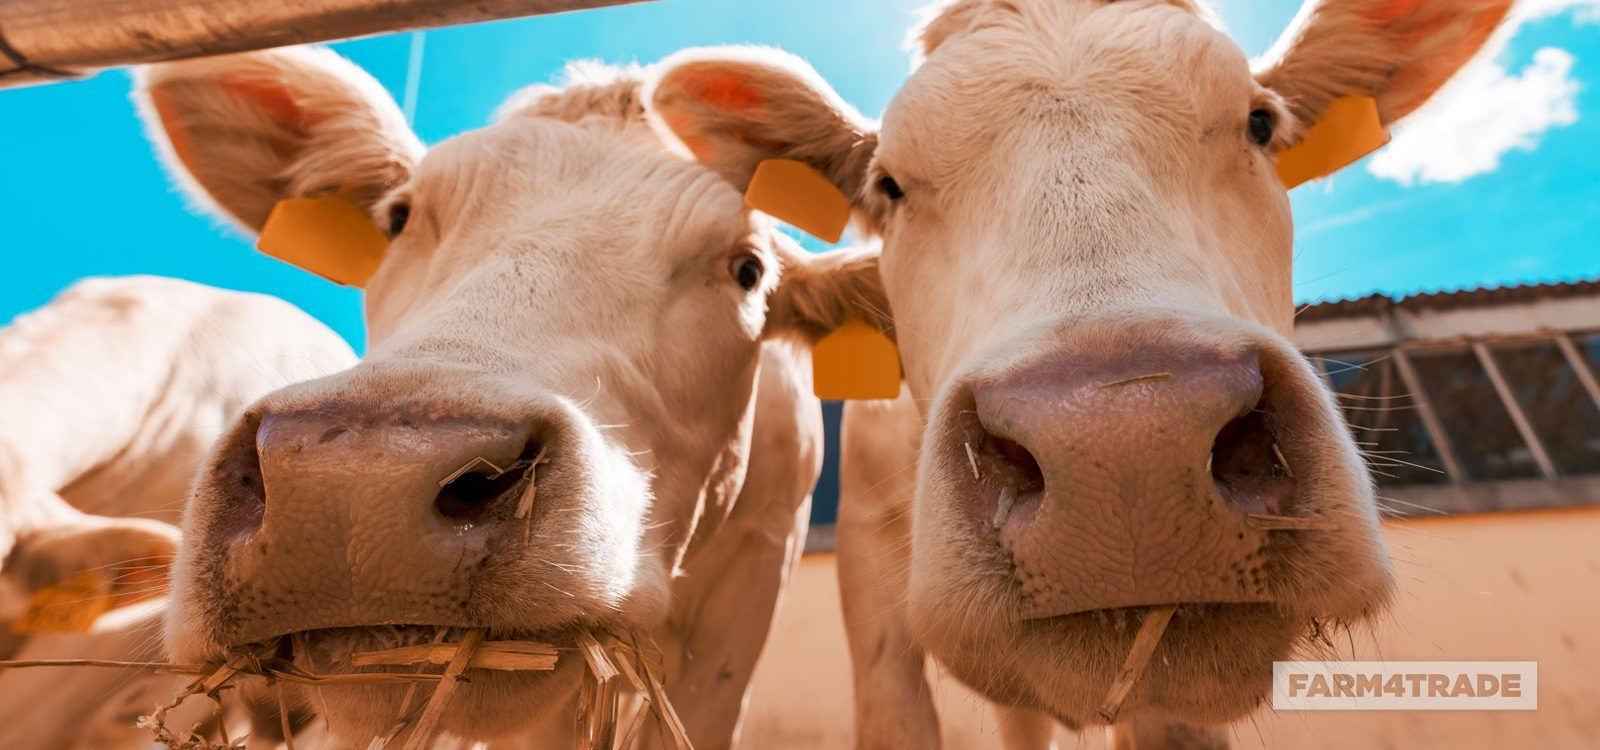 Farm4Trade-Feeding strategies in dairy cows during heat stress conditions